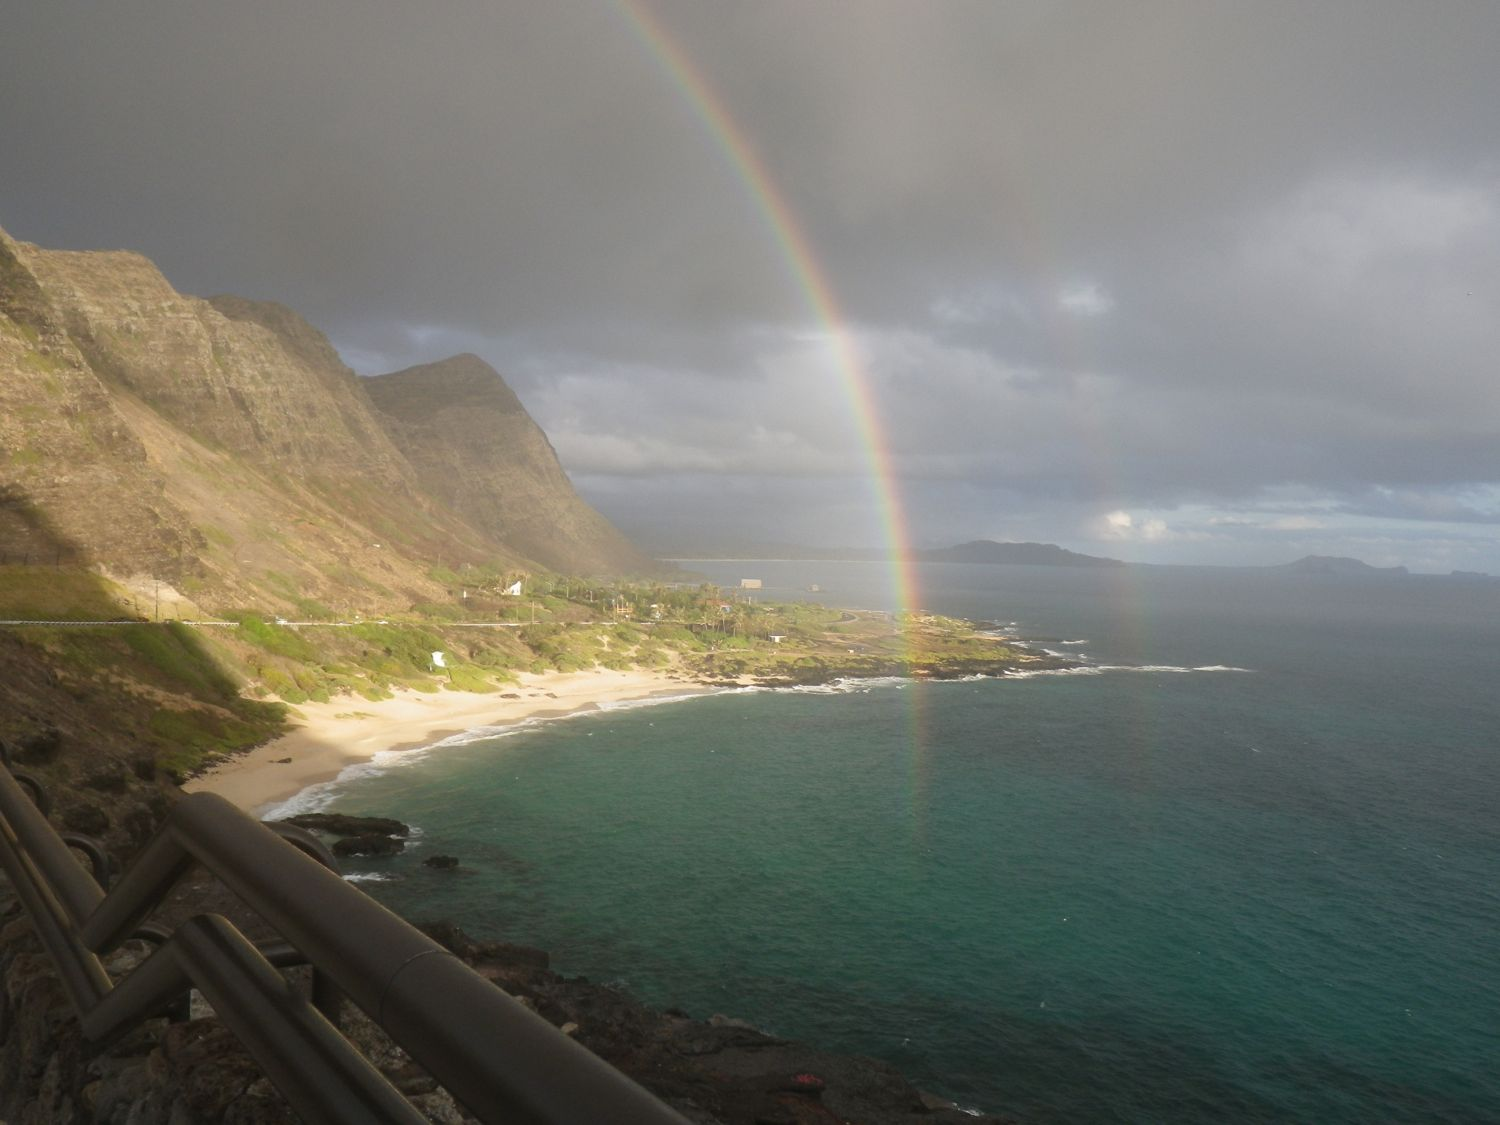 Oahu 16 : double rainbow at Makapuu